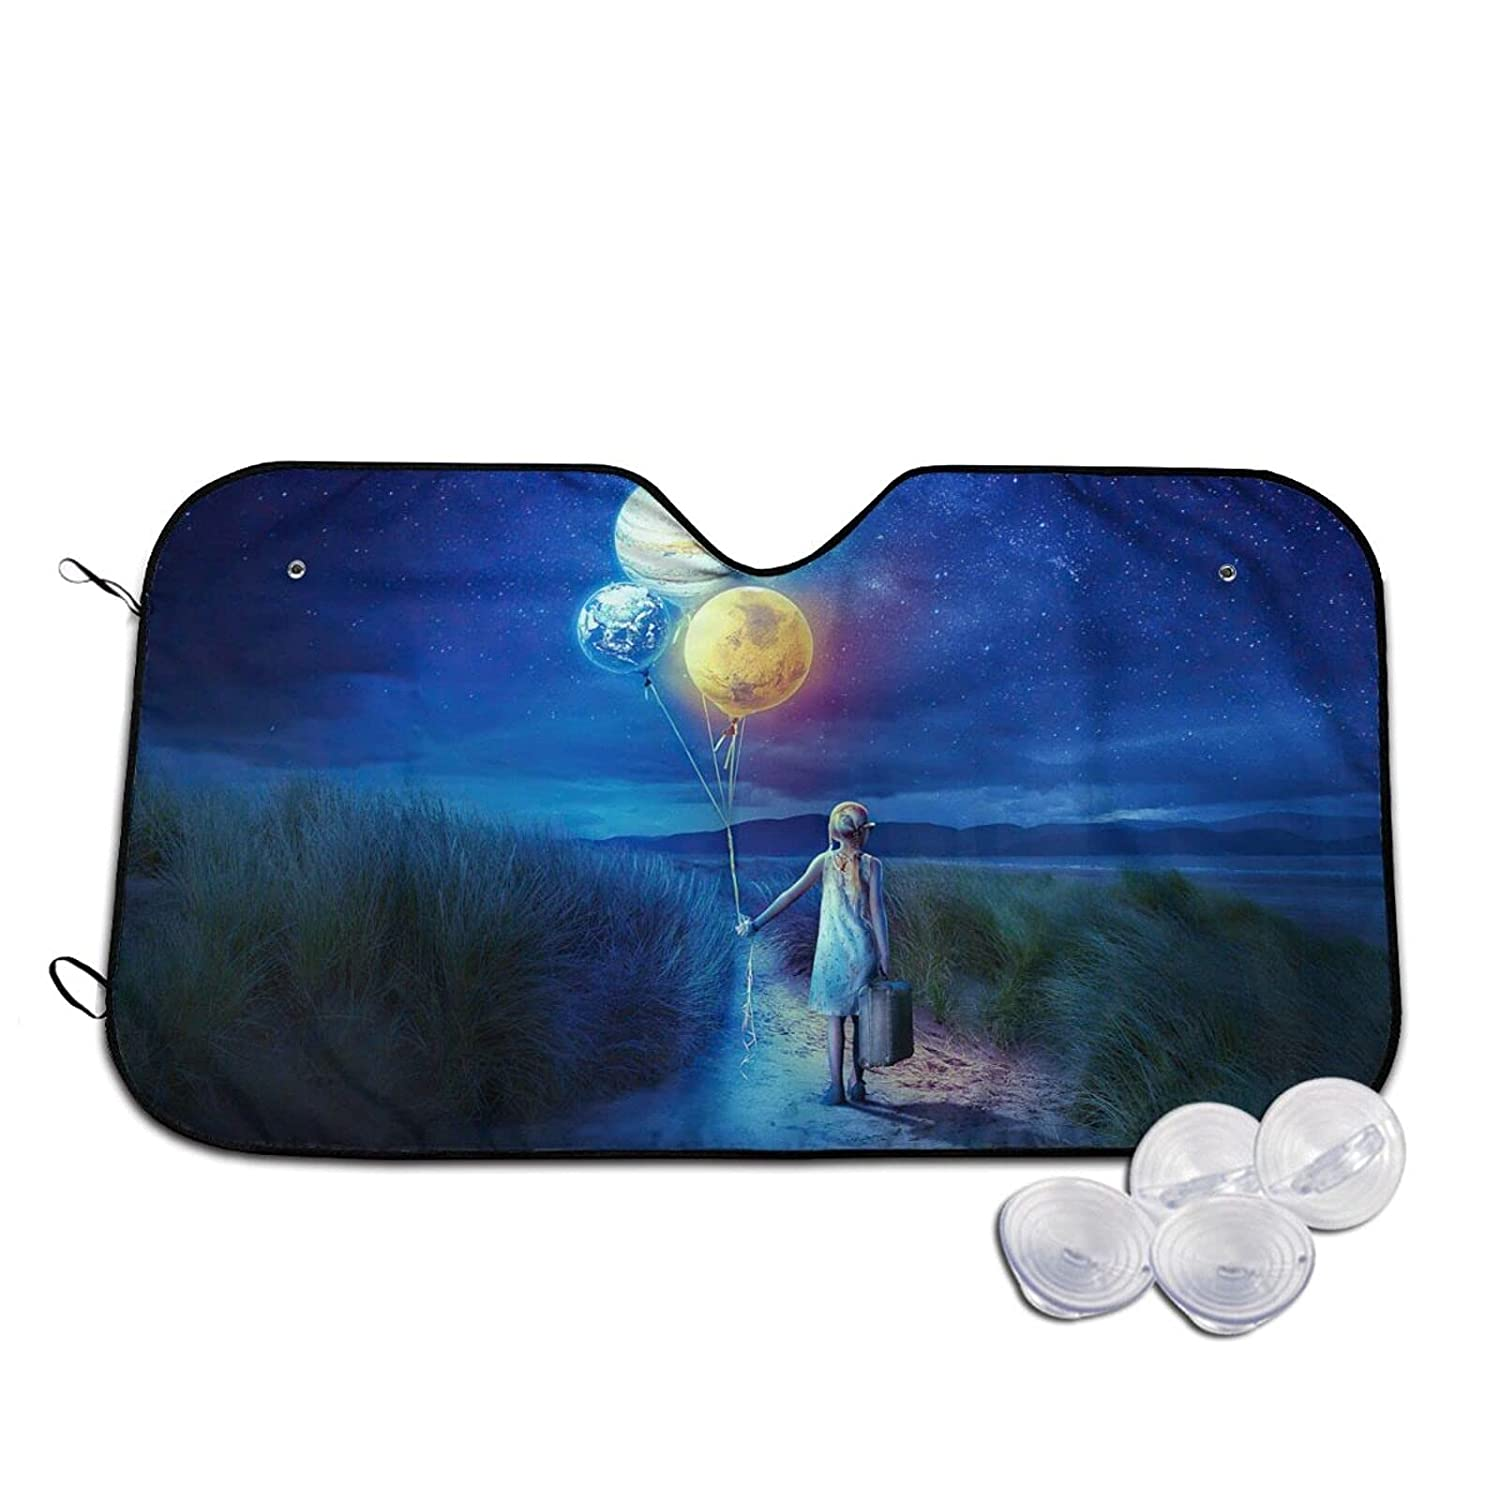 YXYXN Max 67% OFF Branded goods Girl with Earth Balloon Under Sun Car The Starry Sky Blue